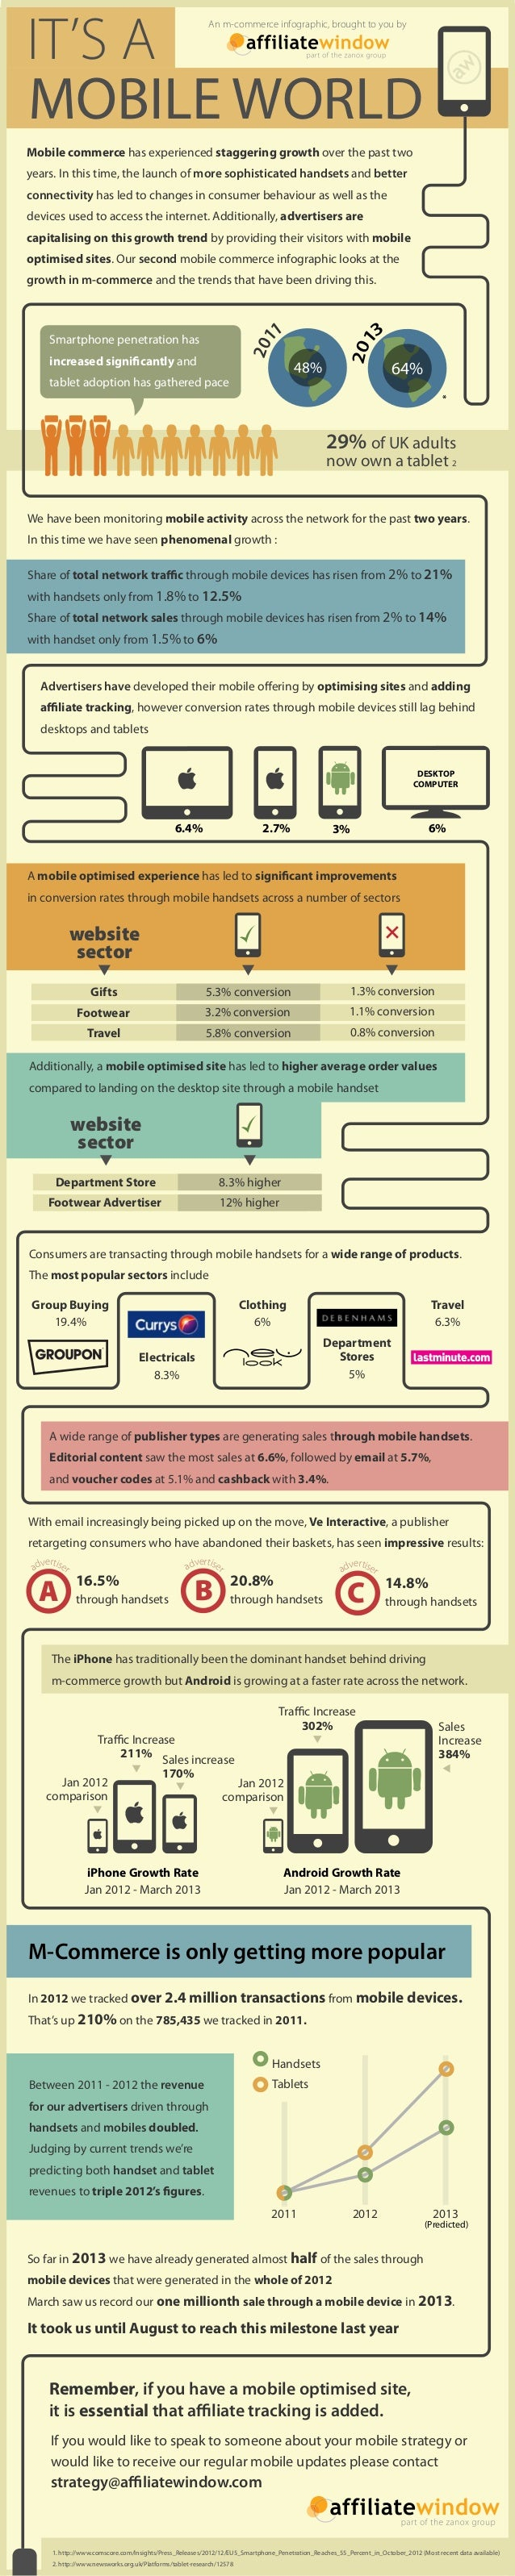 IT'S A MOBILE WORLD An m-commerce infographic, brought to you by  Mobile commerce has experienced staggering growth over t...